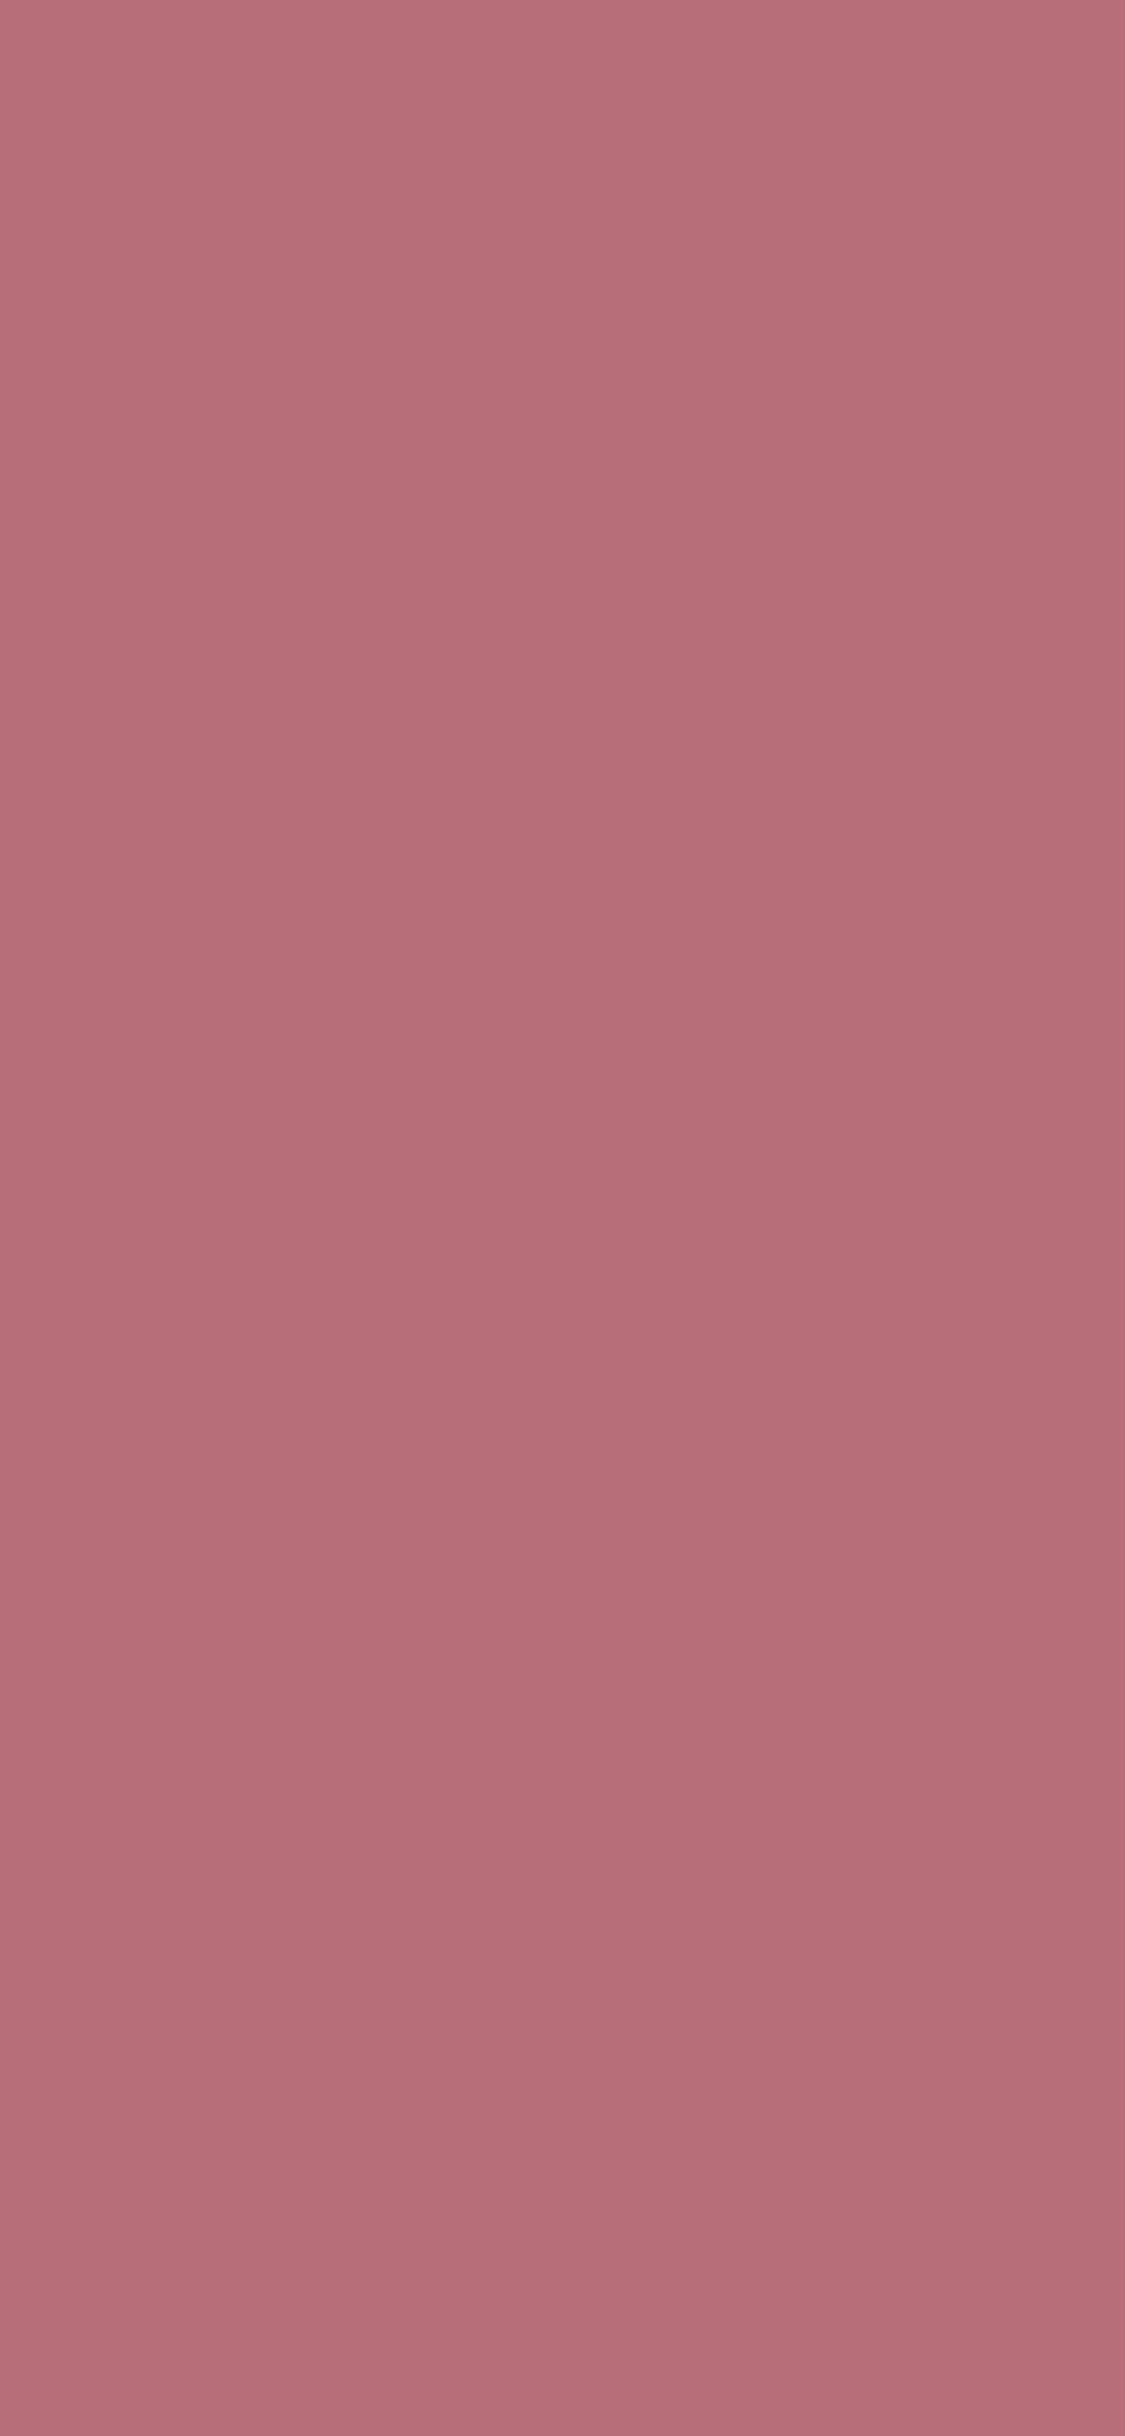 1125x2436 Rose Gold Solid Color Background